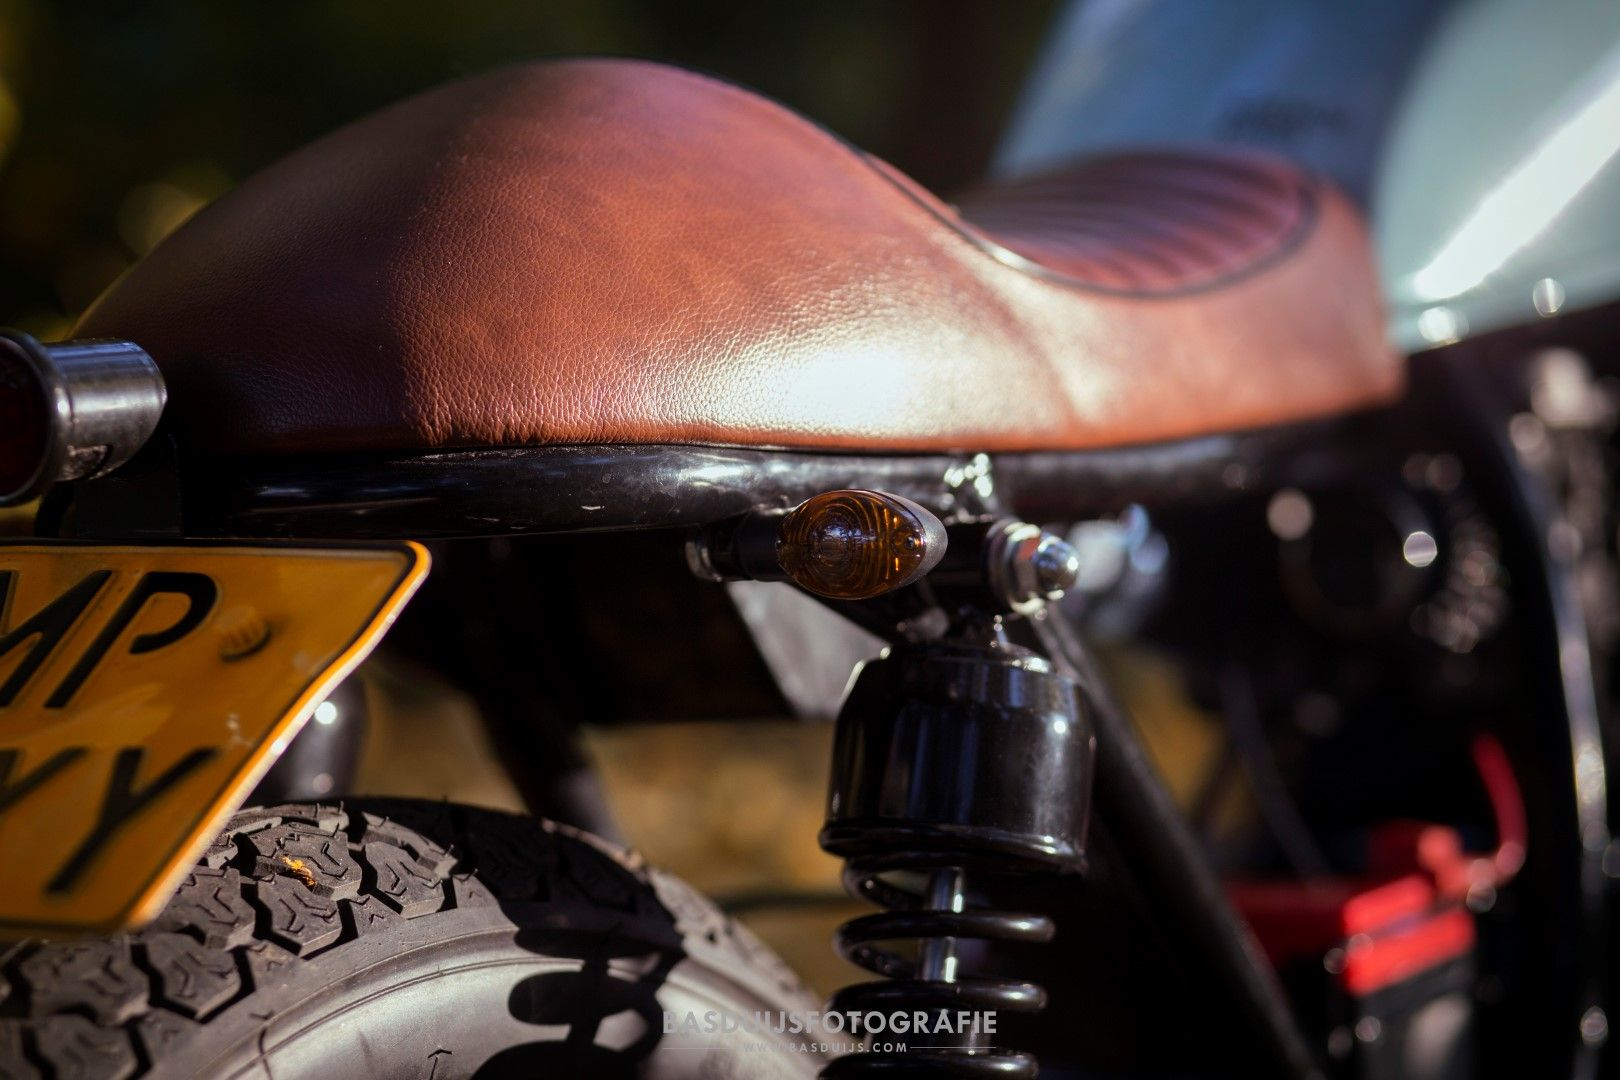 http://columnm.com/suzuki-gs450l-by-wrench-kings-2267-2/